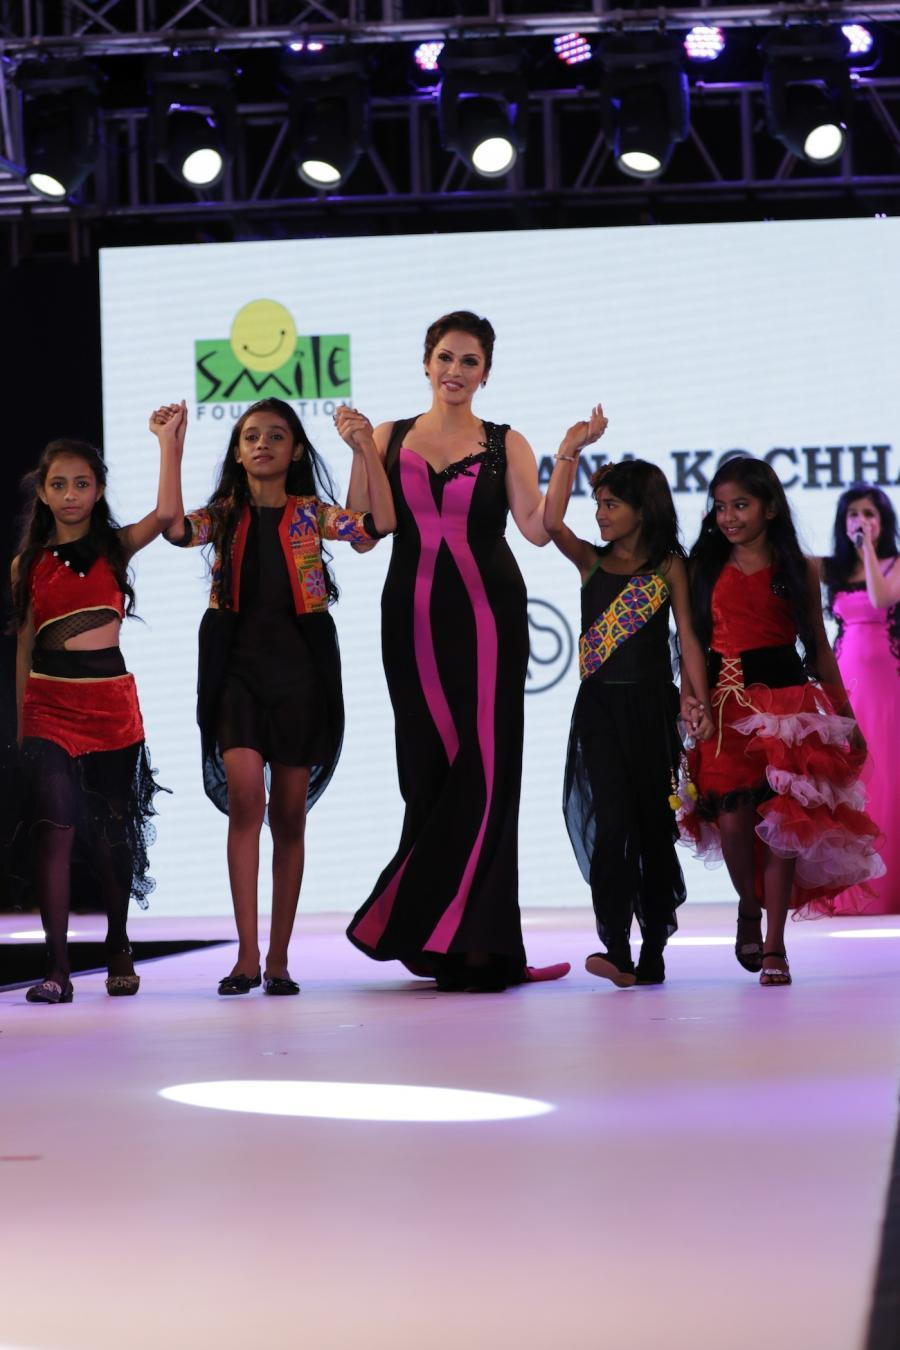 9th Smile Foundation Charity Fashion Show in Mumbai